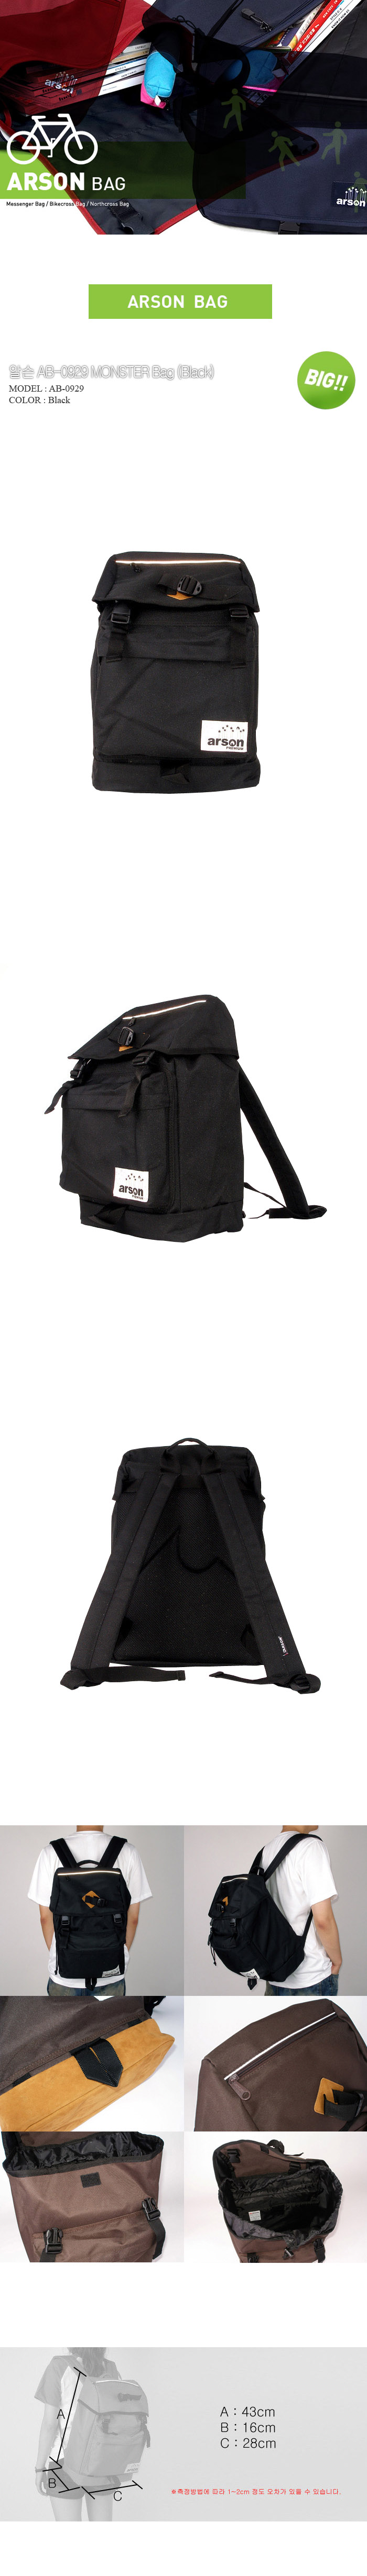 [ ARSON ] AB-0929 (Black)/Backpack School Bag